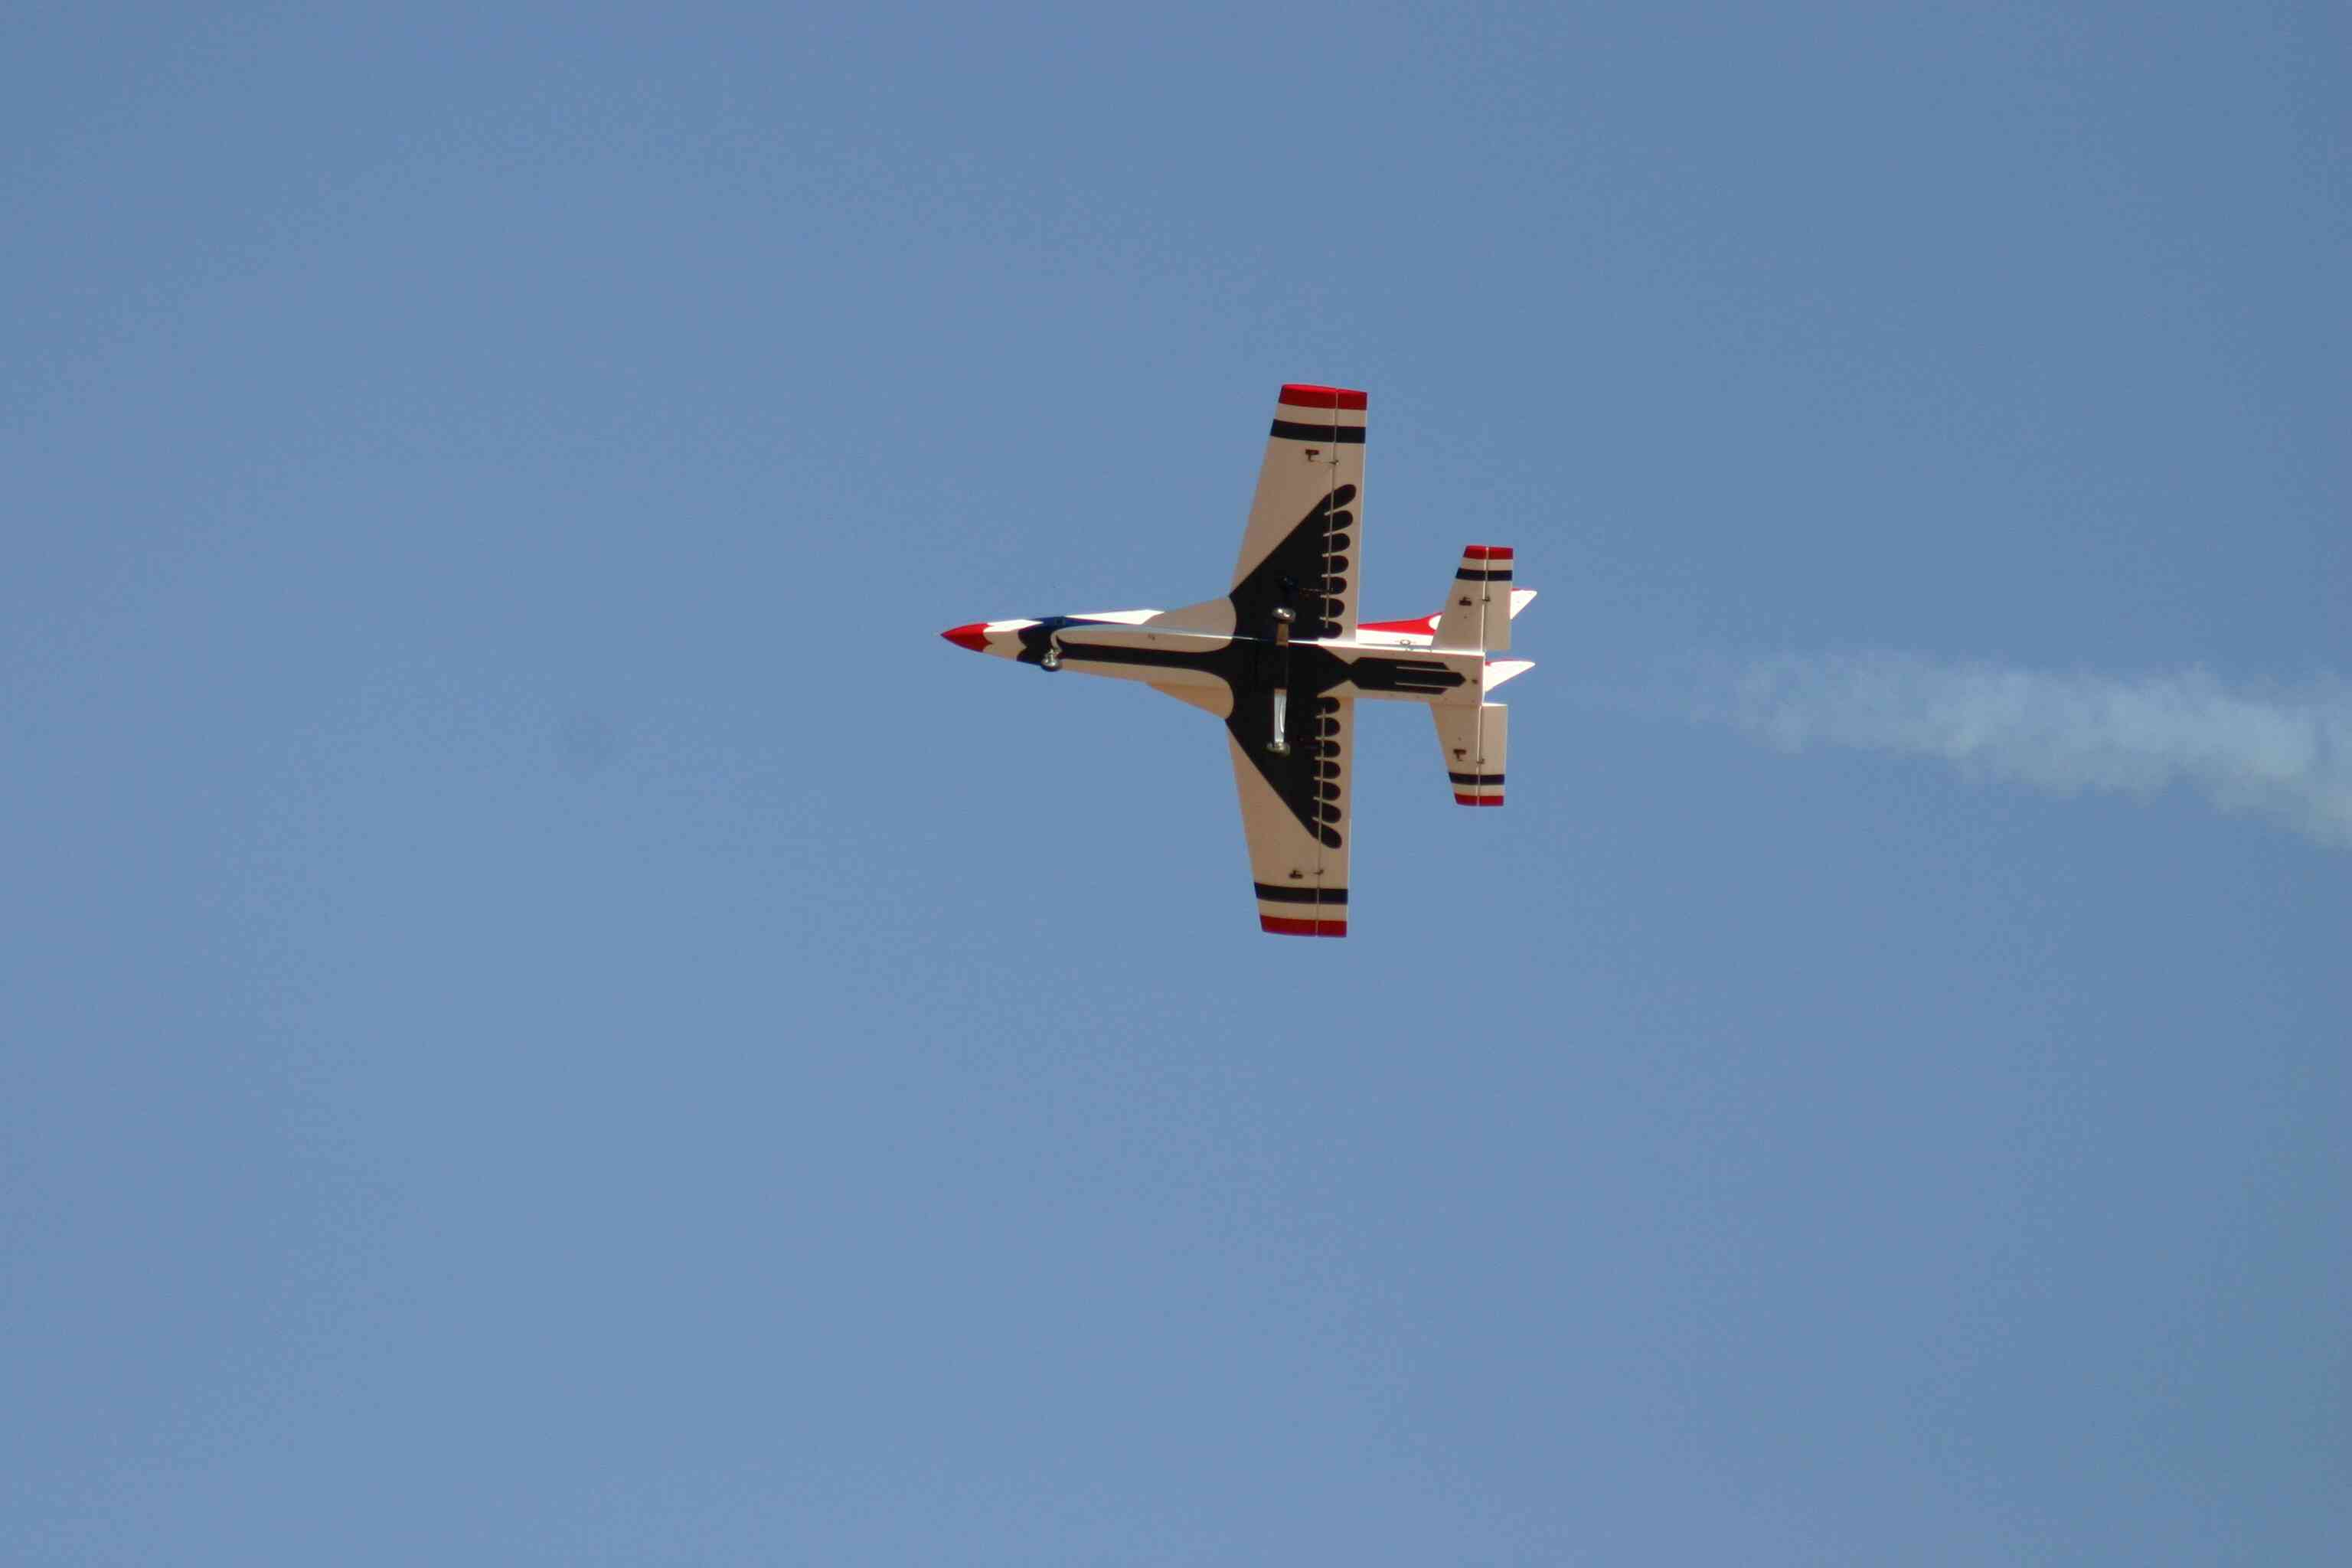 Click image for larger version  Name:AcroJet2.JPG Views:486 Size:51.7 KB ID:1913994